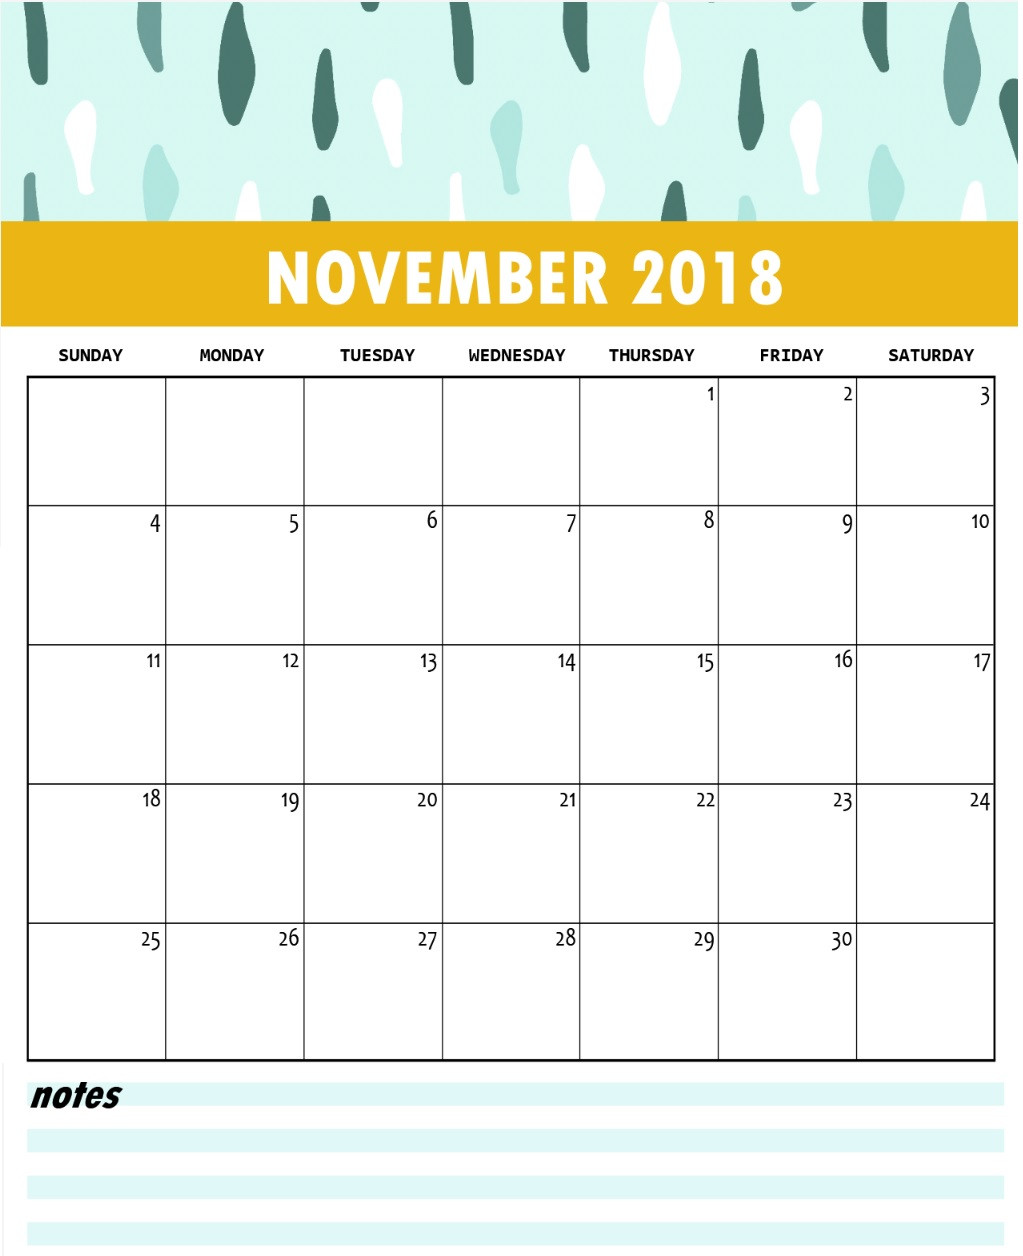 graphic about Printable November Calendar Pdf titled November 2018 Calendar PDF